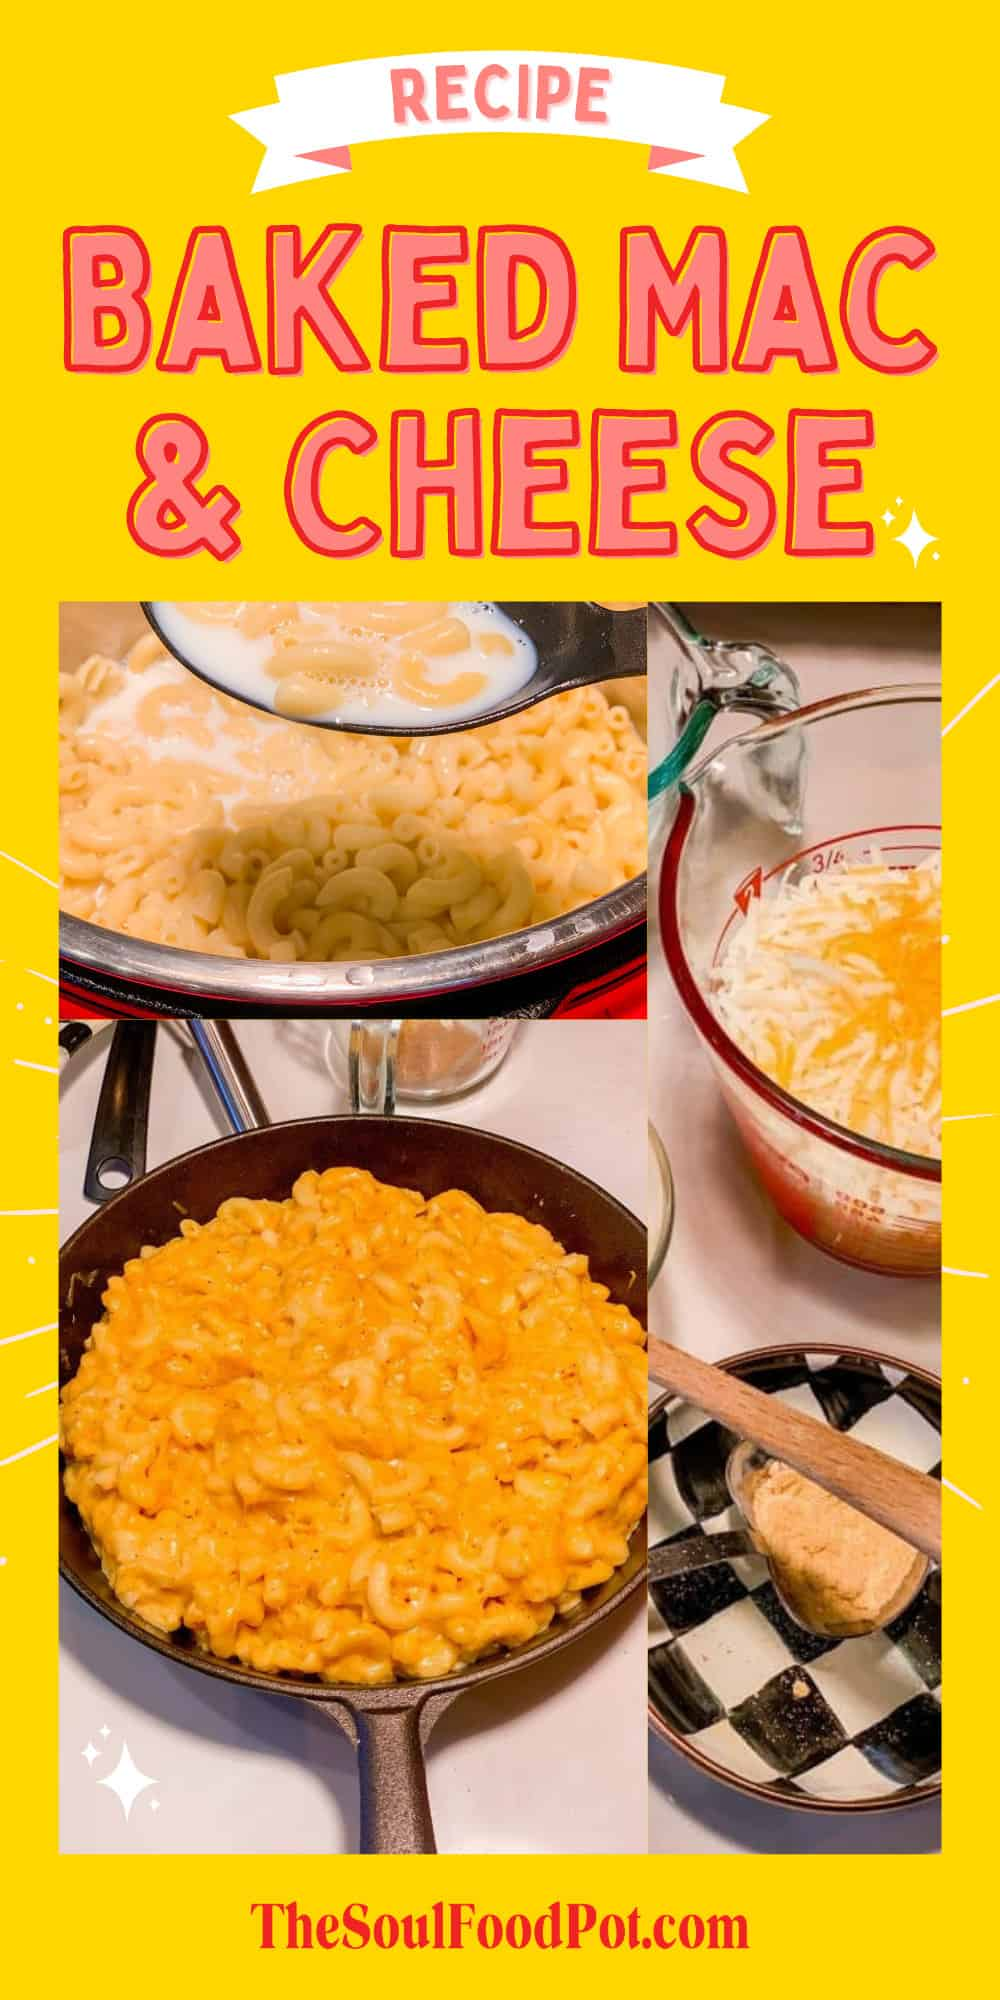 Baked Mac and Cheese Recipe - The Soul Food Pot